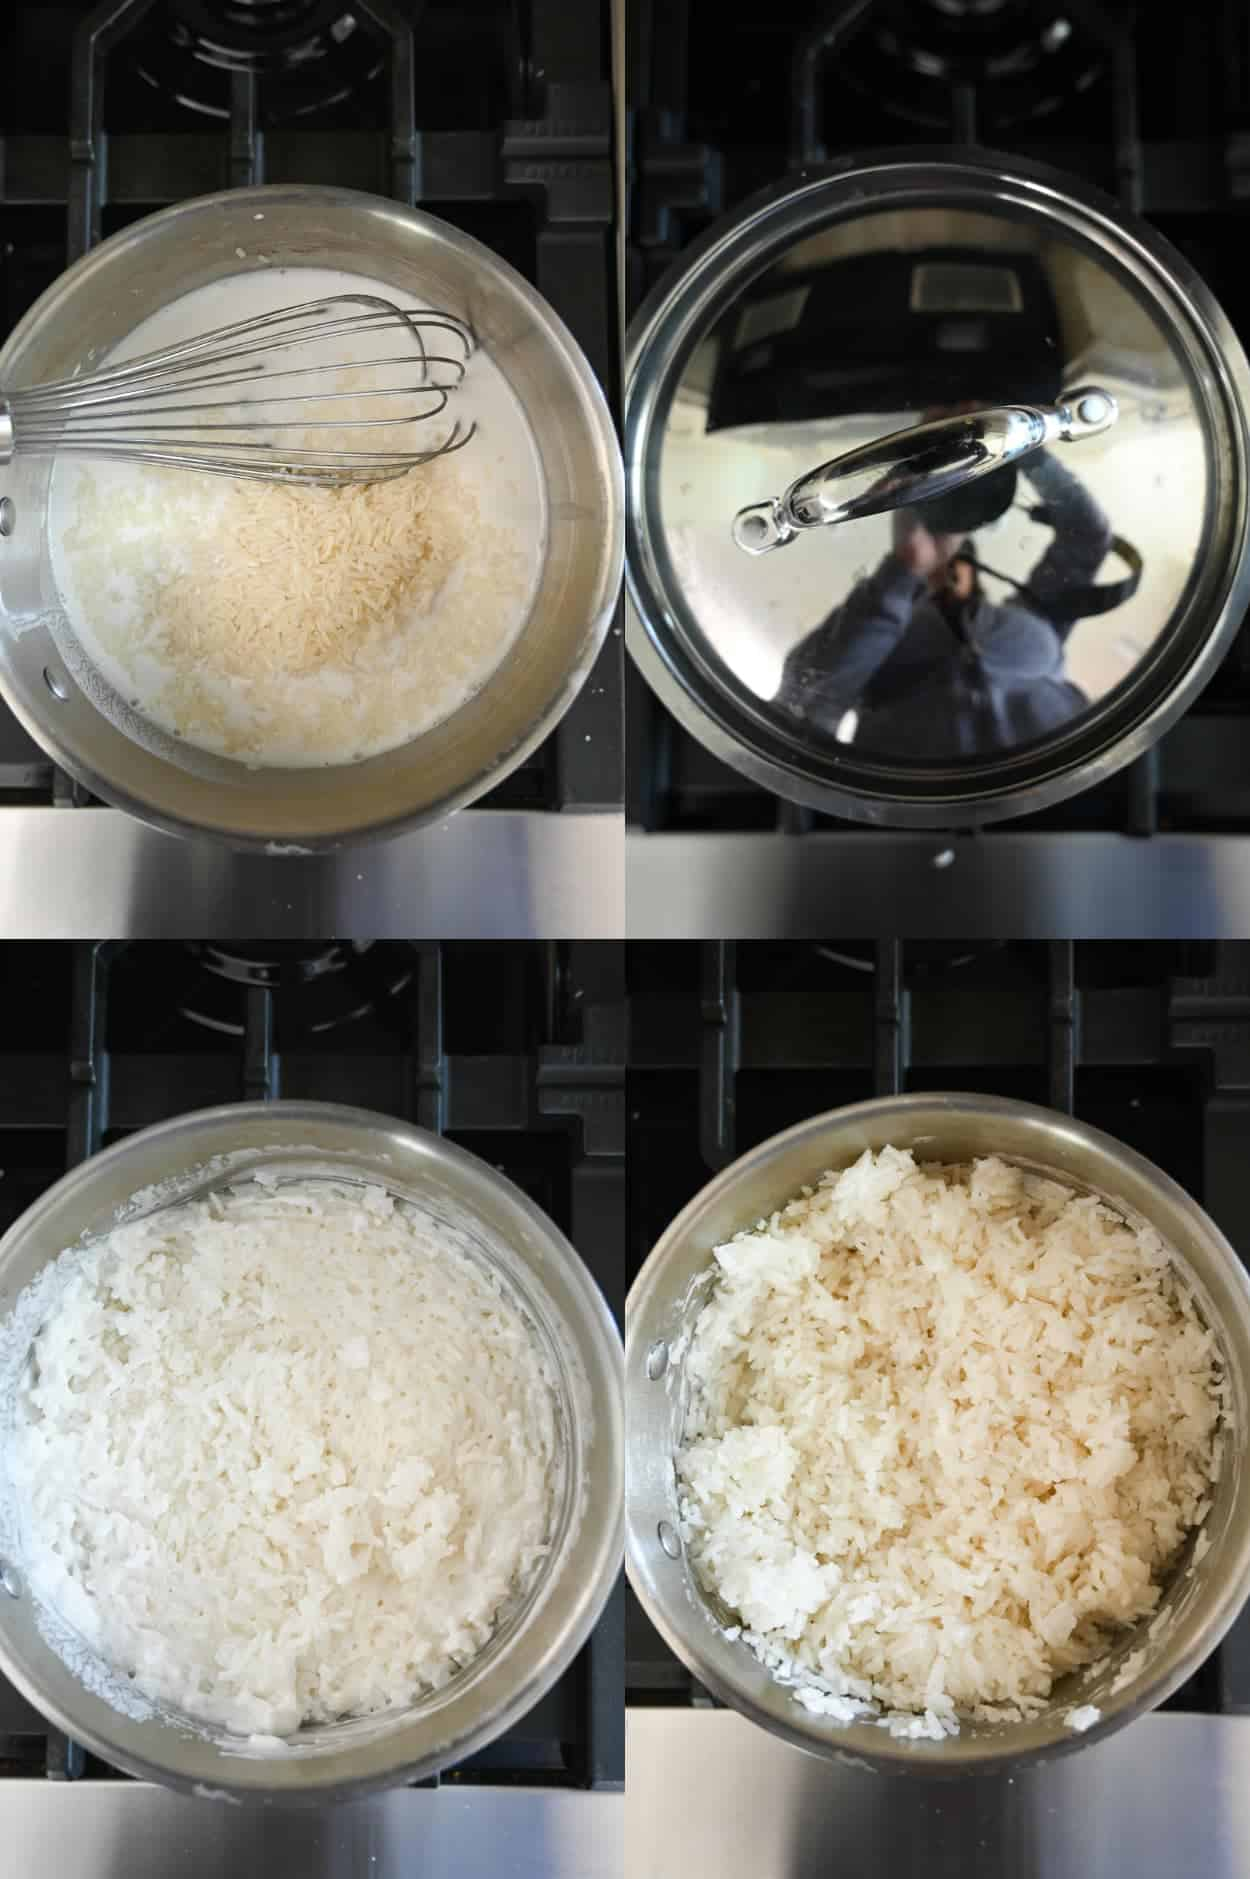 Four process photos. First one, liquid ingredients and jasmine rice in a saucepan. Second one a lid placed on top of the pot. Third one, rice is done cooking. Fourth one, rice has been fluffed with a fork.